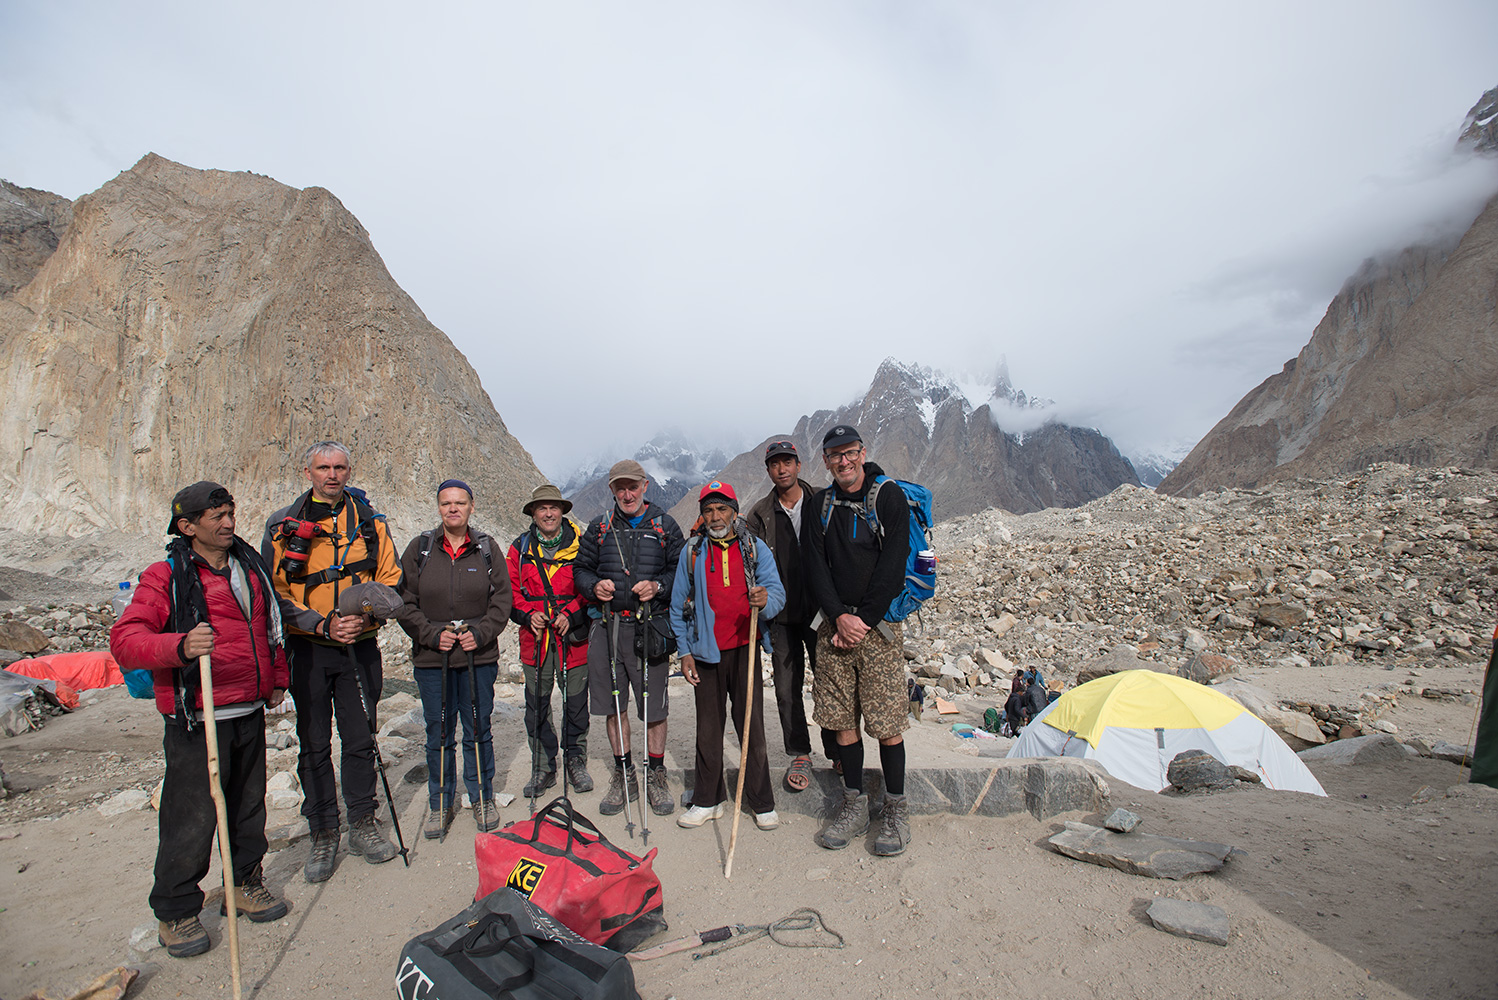 Leaving camp for the hike up to UrdokasL to R; Yahya Khan, Kristof Kinget, Caroline Mattelaer, Sandy Masson, Jim Hartill, Mohd Ali, Ghulam Hussein & Glenn Cunningham